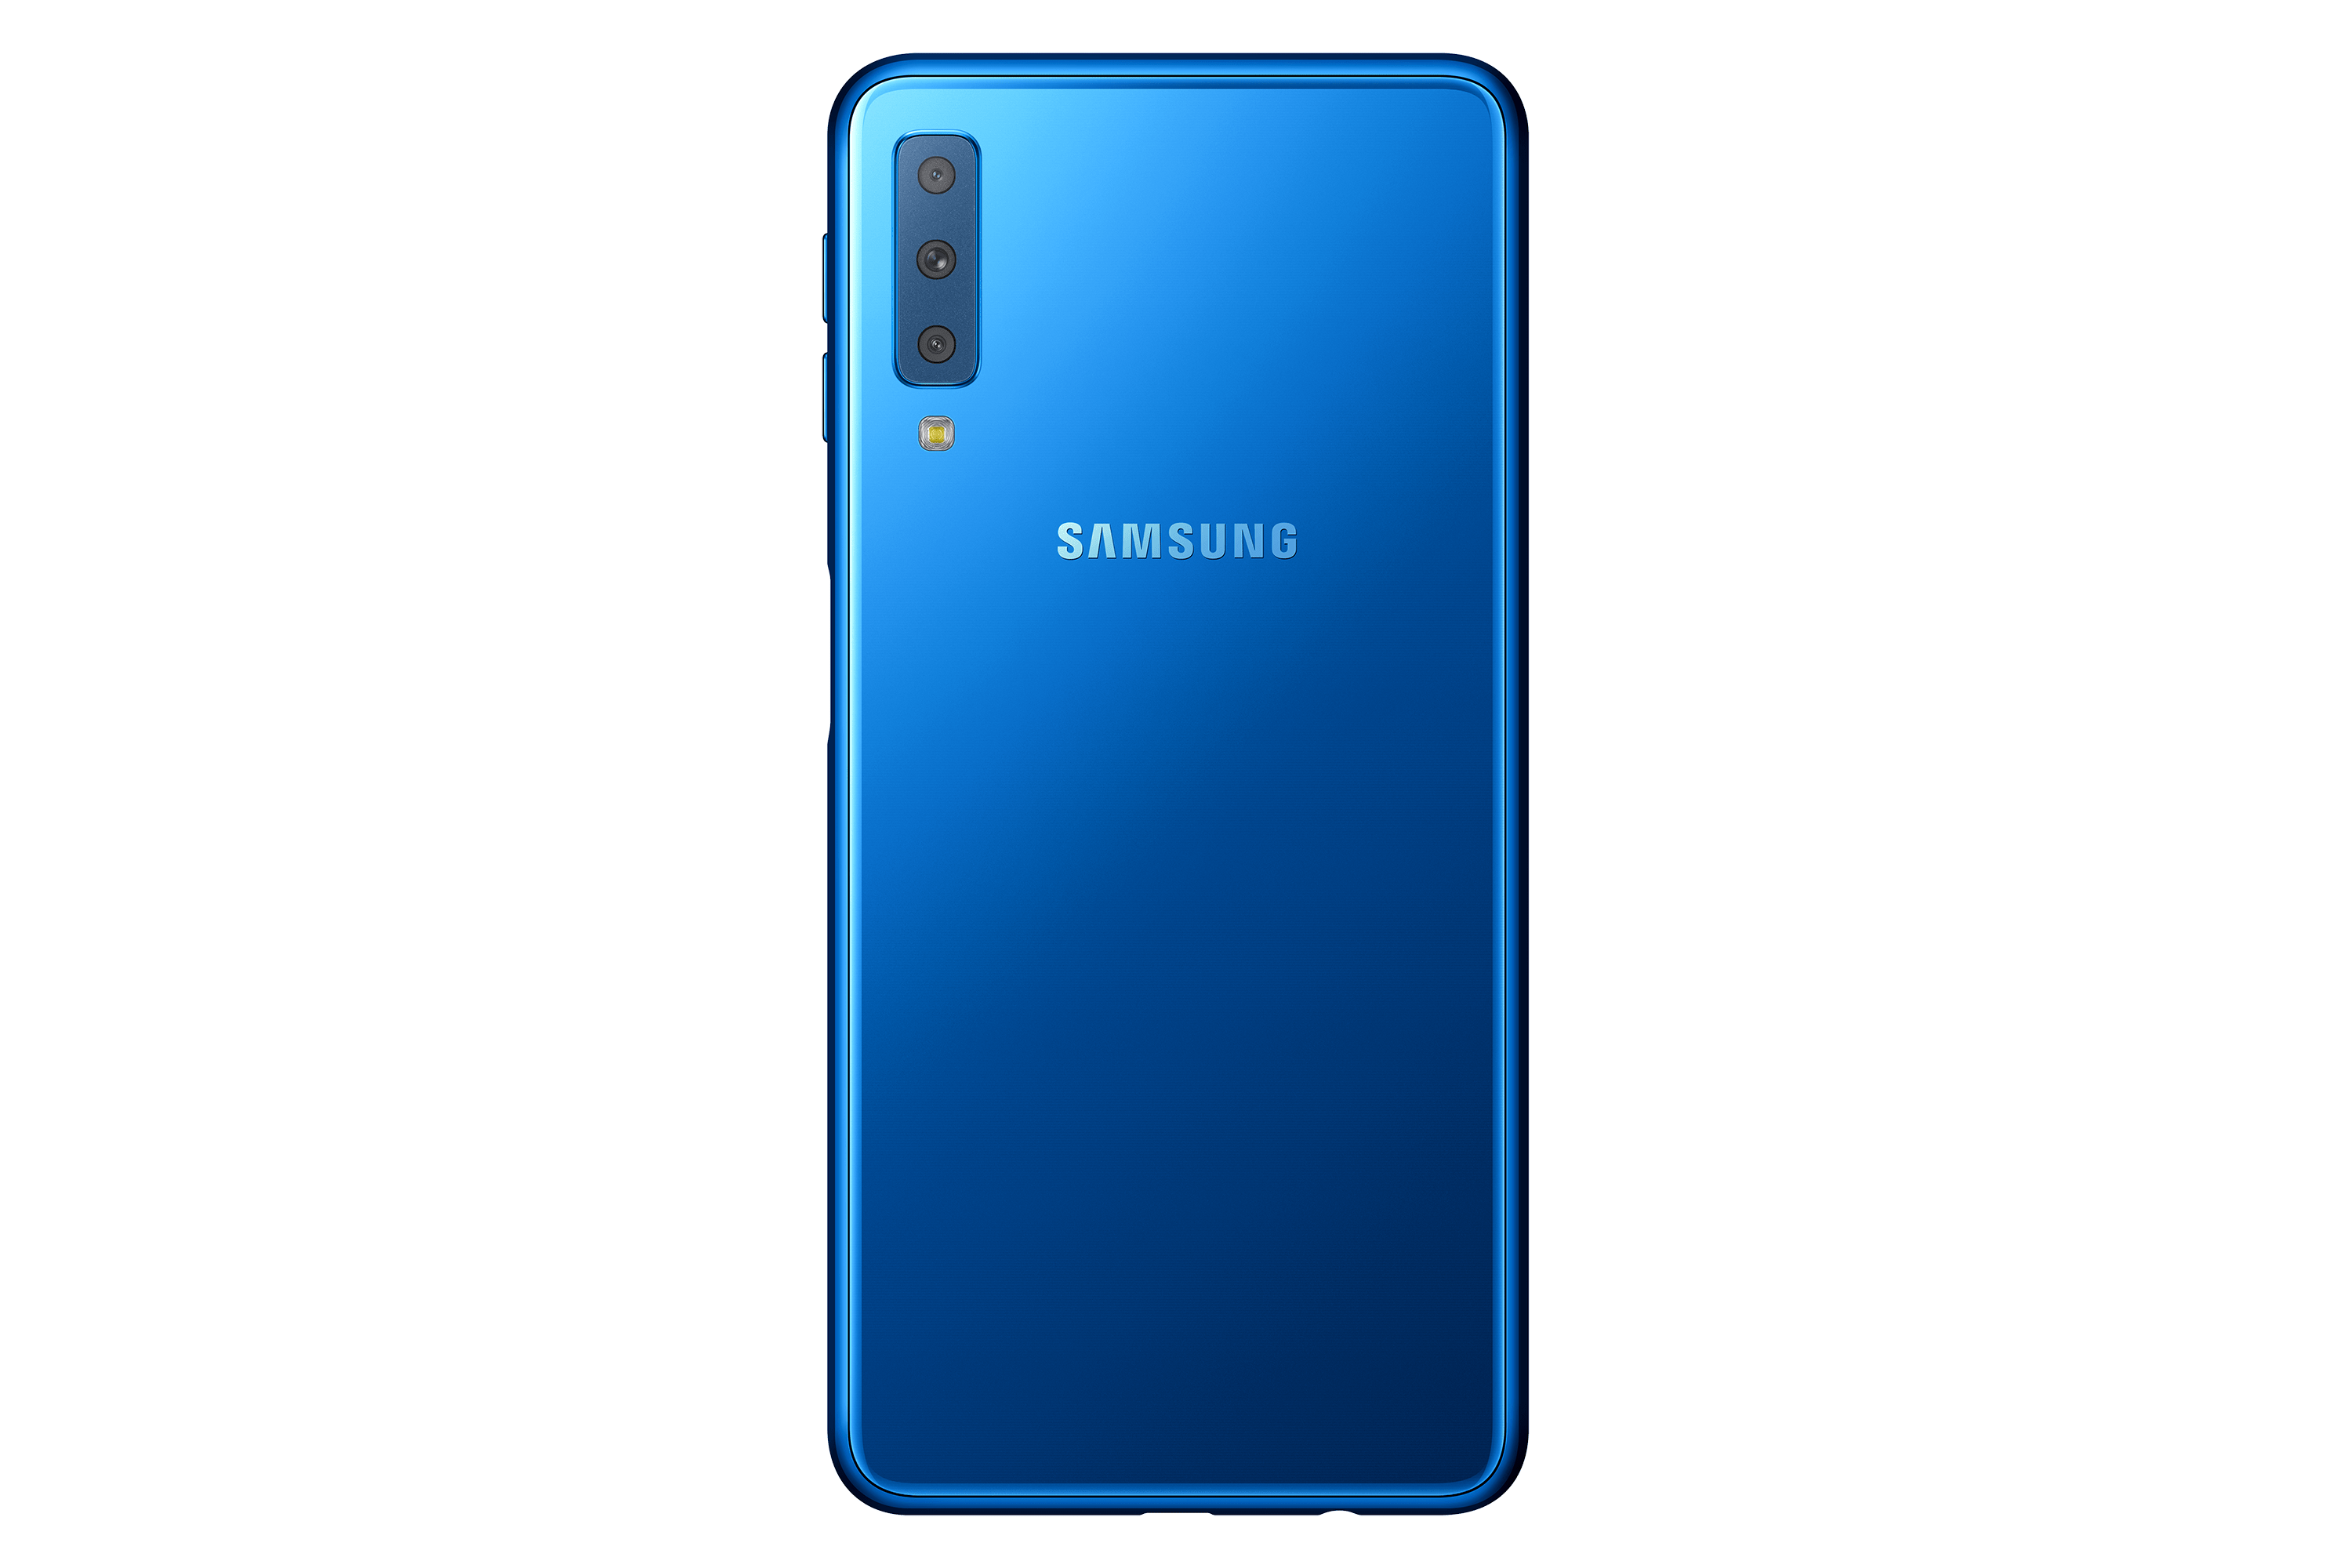 Samsungs Galaxy A7 Has Three Cameras And A Feature From The Note 9 Smartphone Samsung As For At Back It Plays Totally Different Game Huawei P20s Tri Lens Solution Theres 24mp Standard Angle 8mp